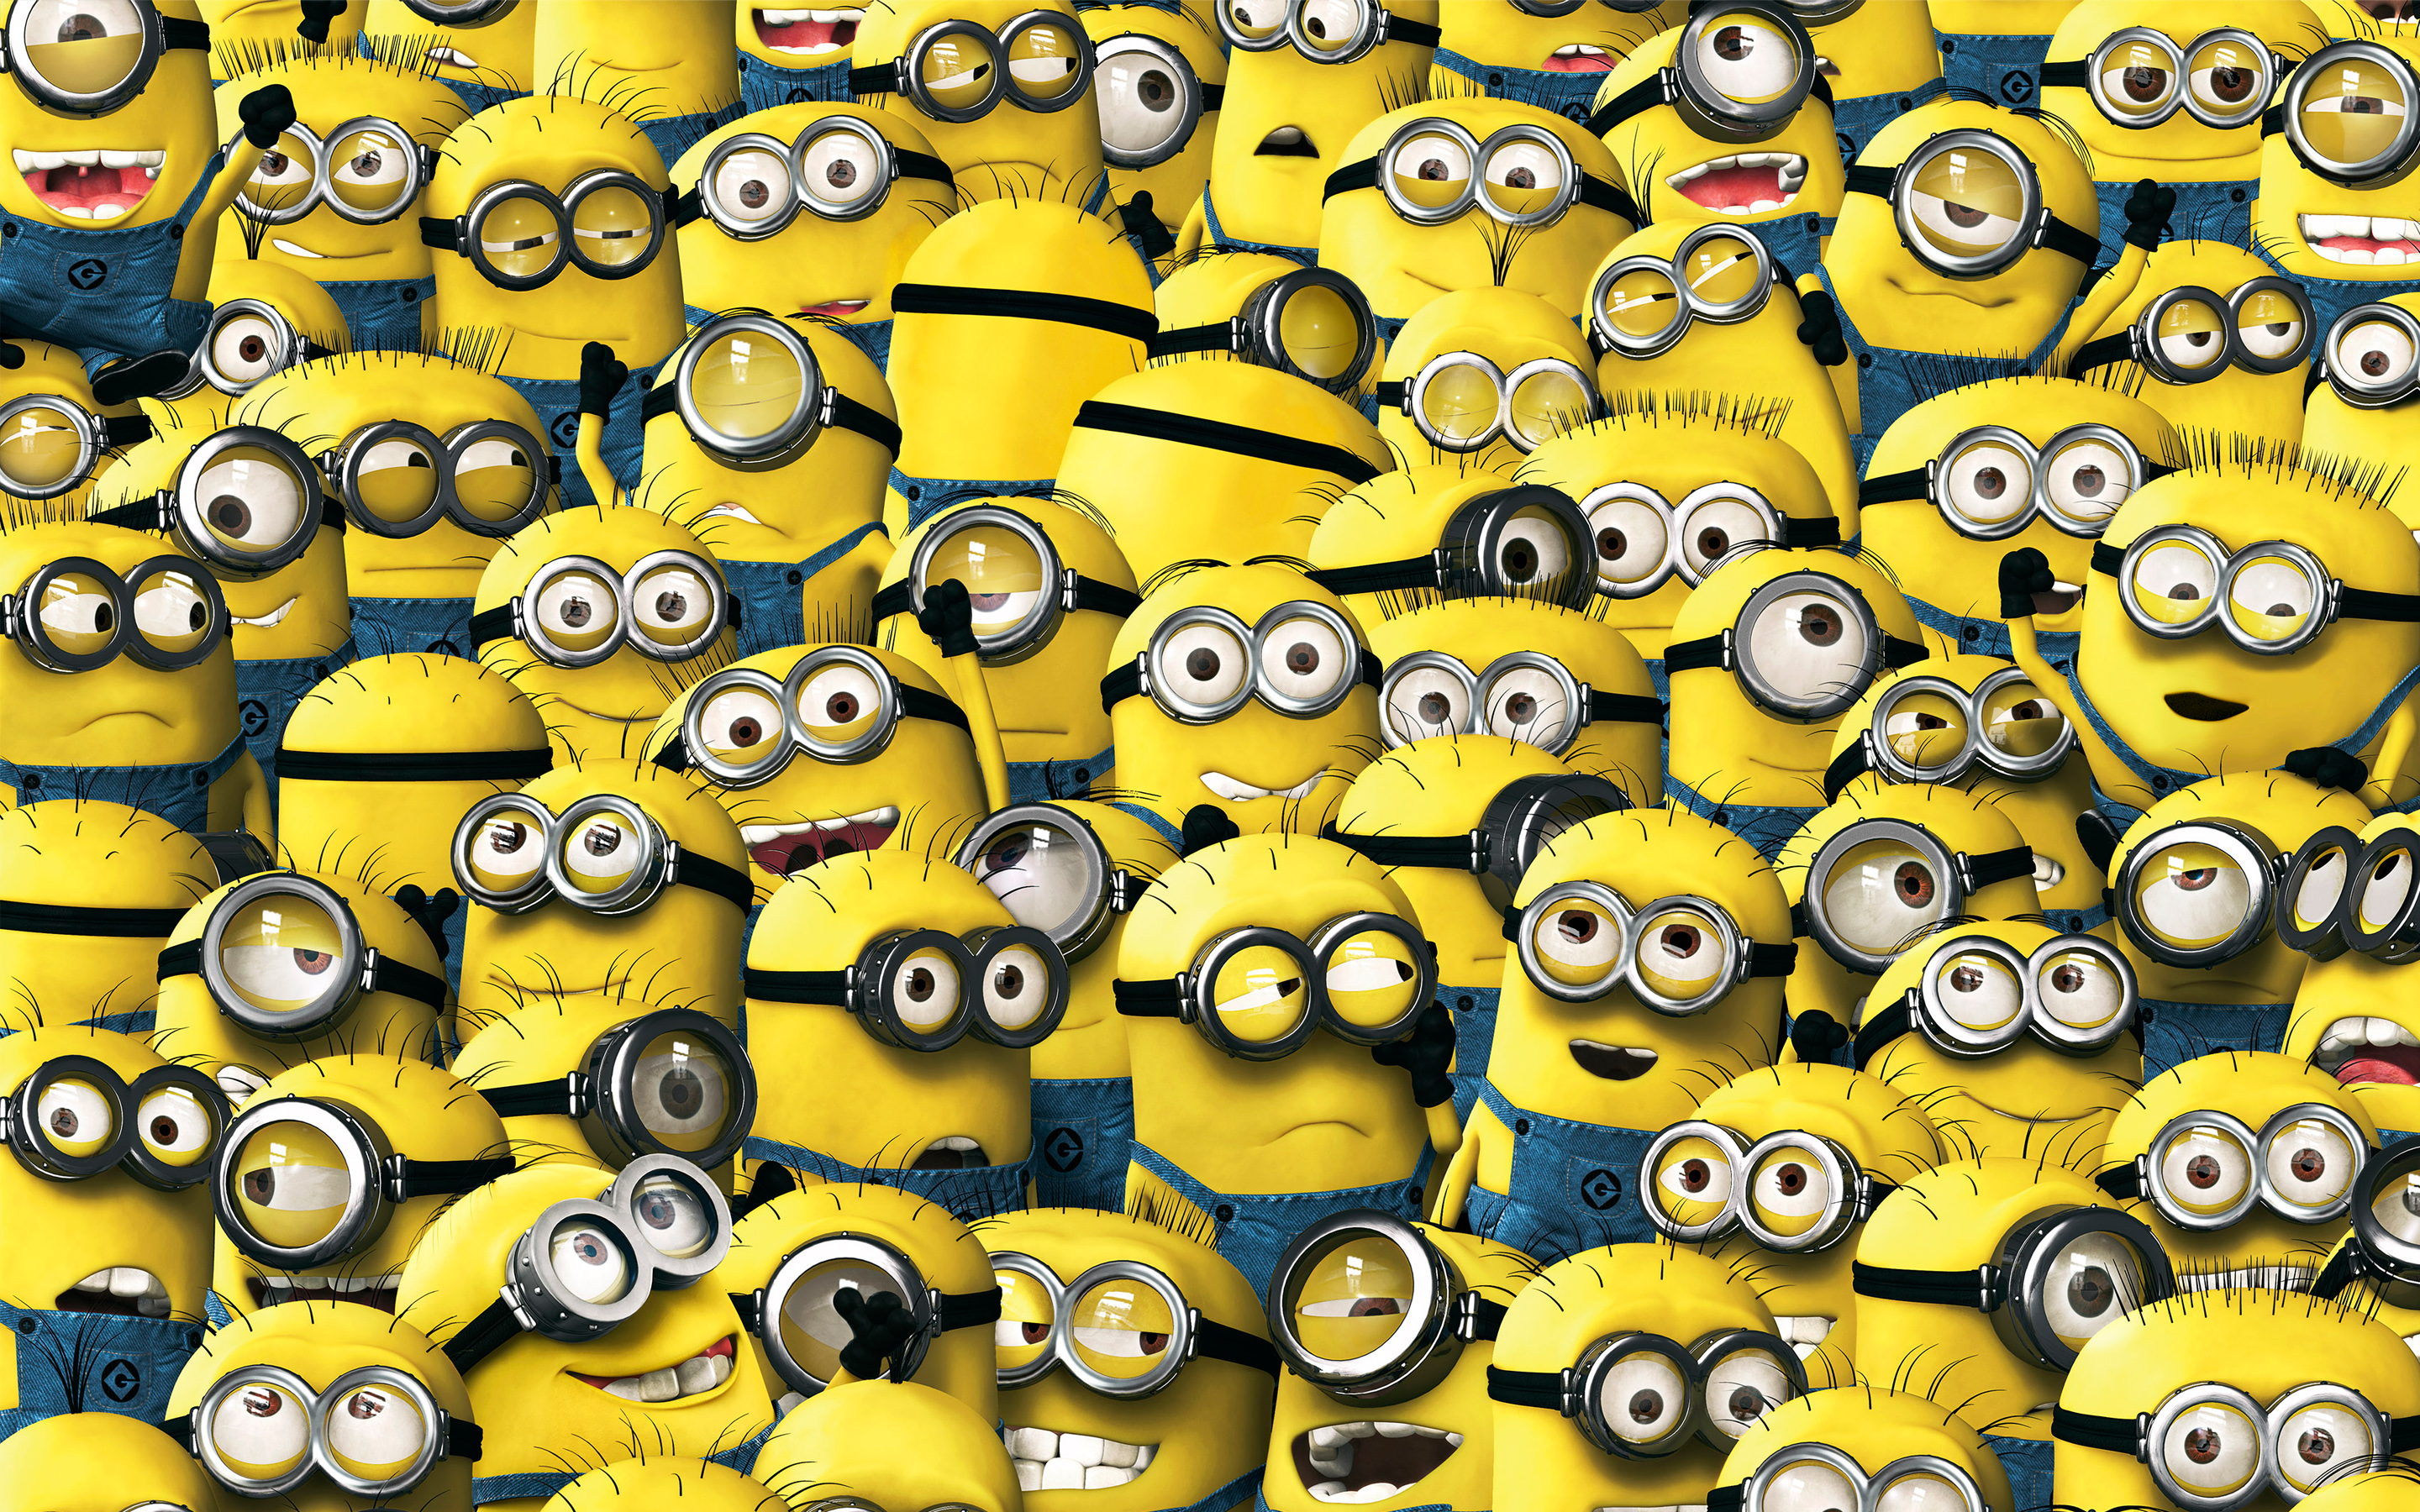 Different kinds of Minions